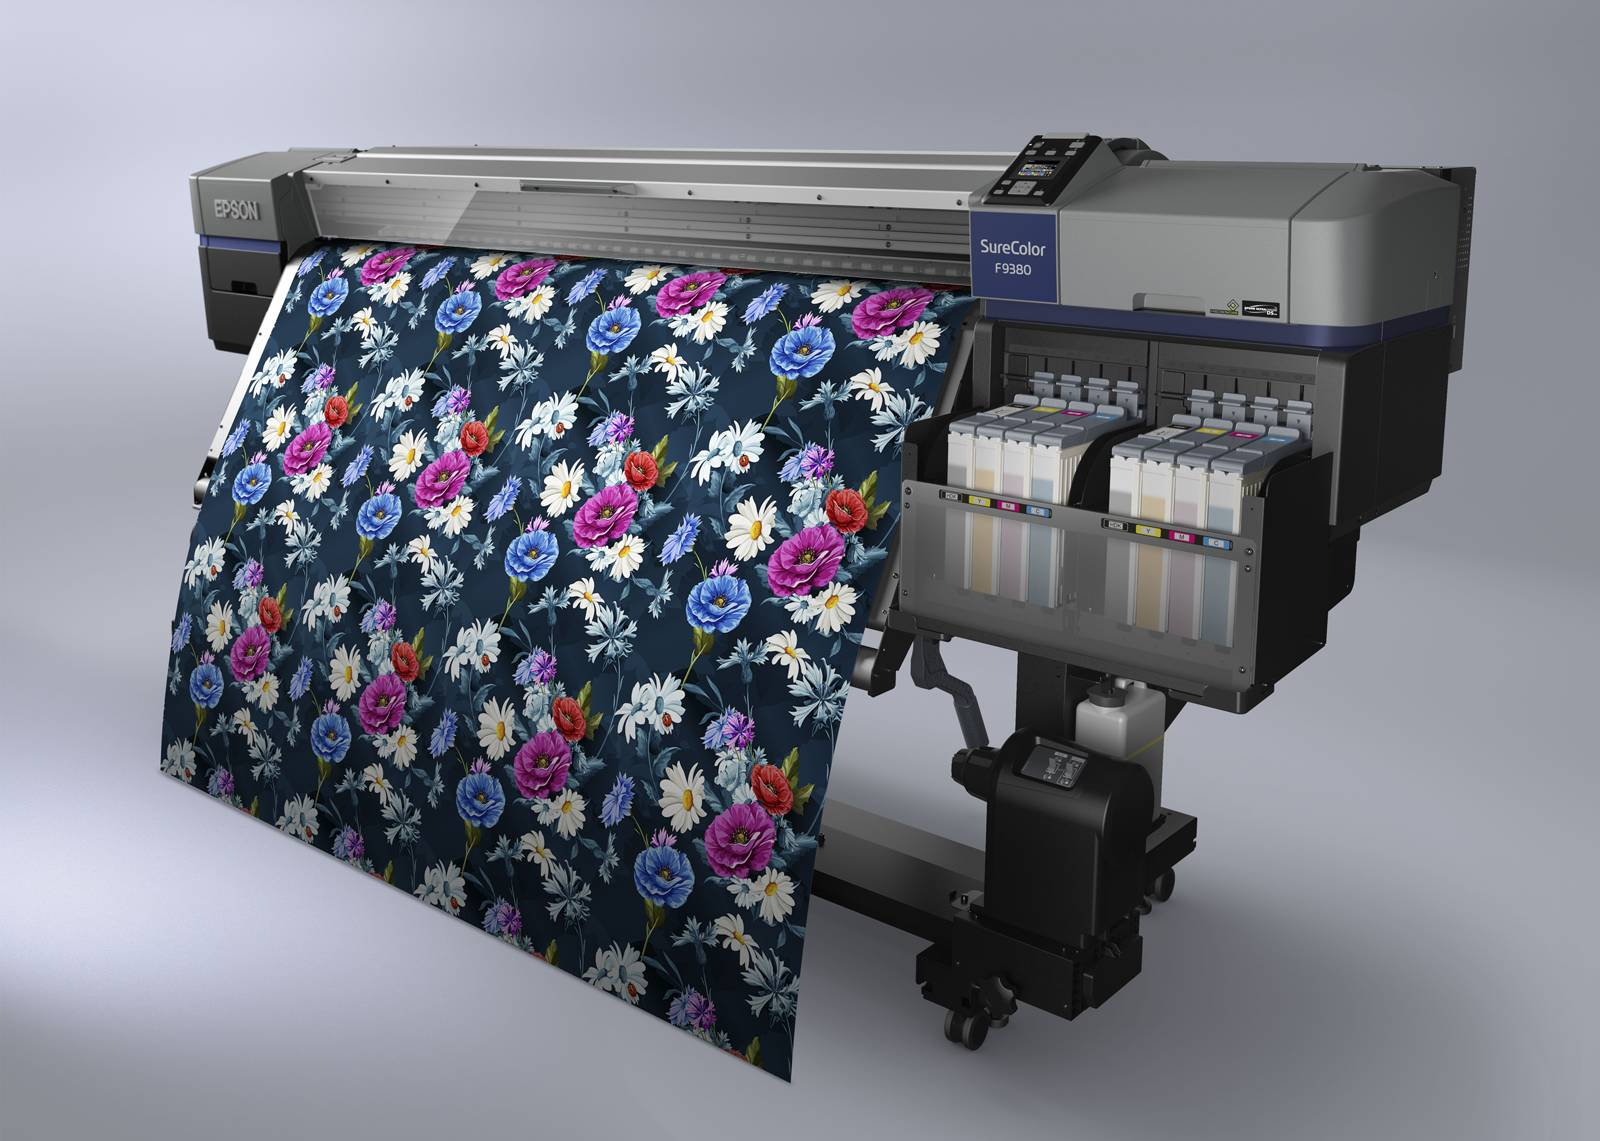 Precision fast, play color - Epson new SureColor F9380 beautiful debut